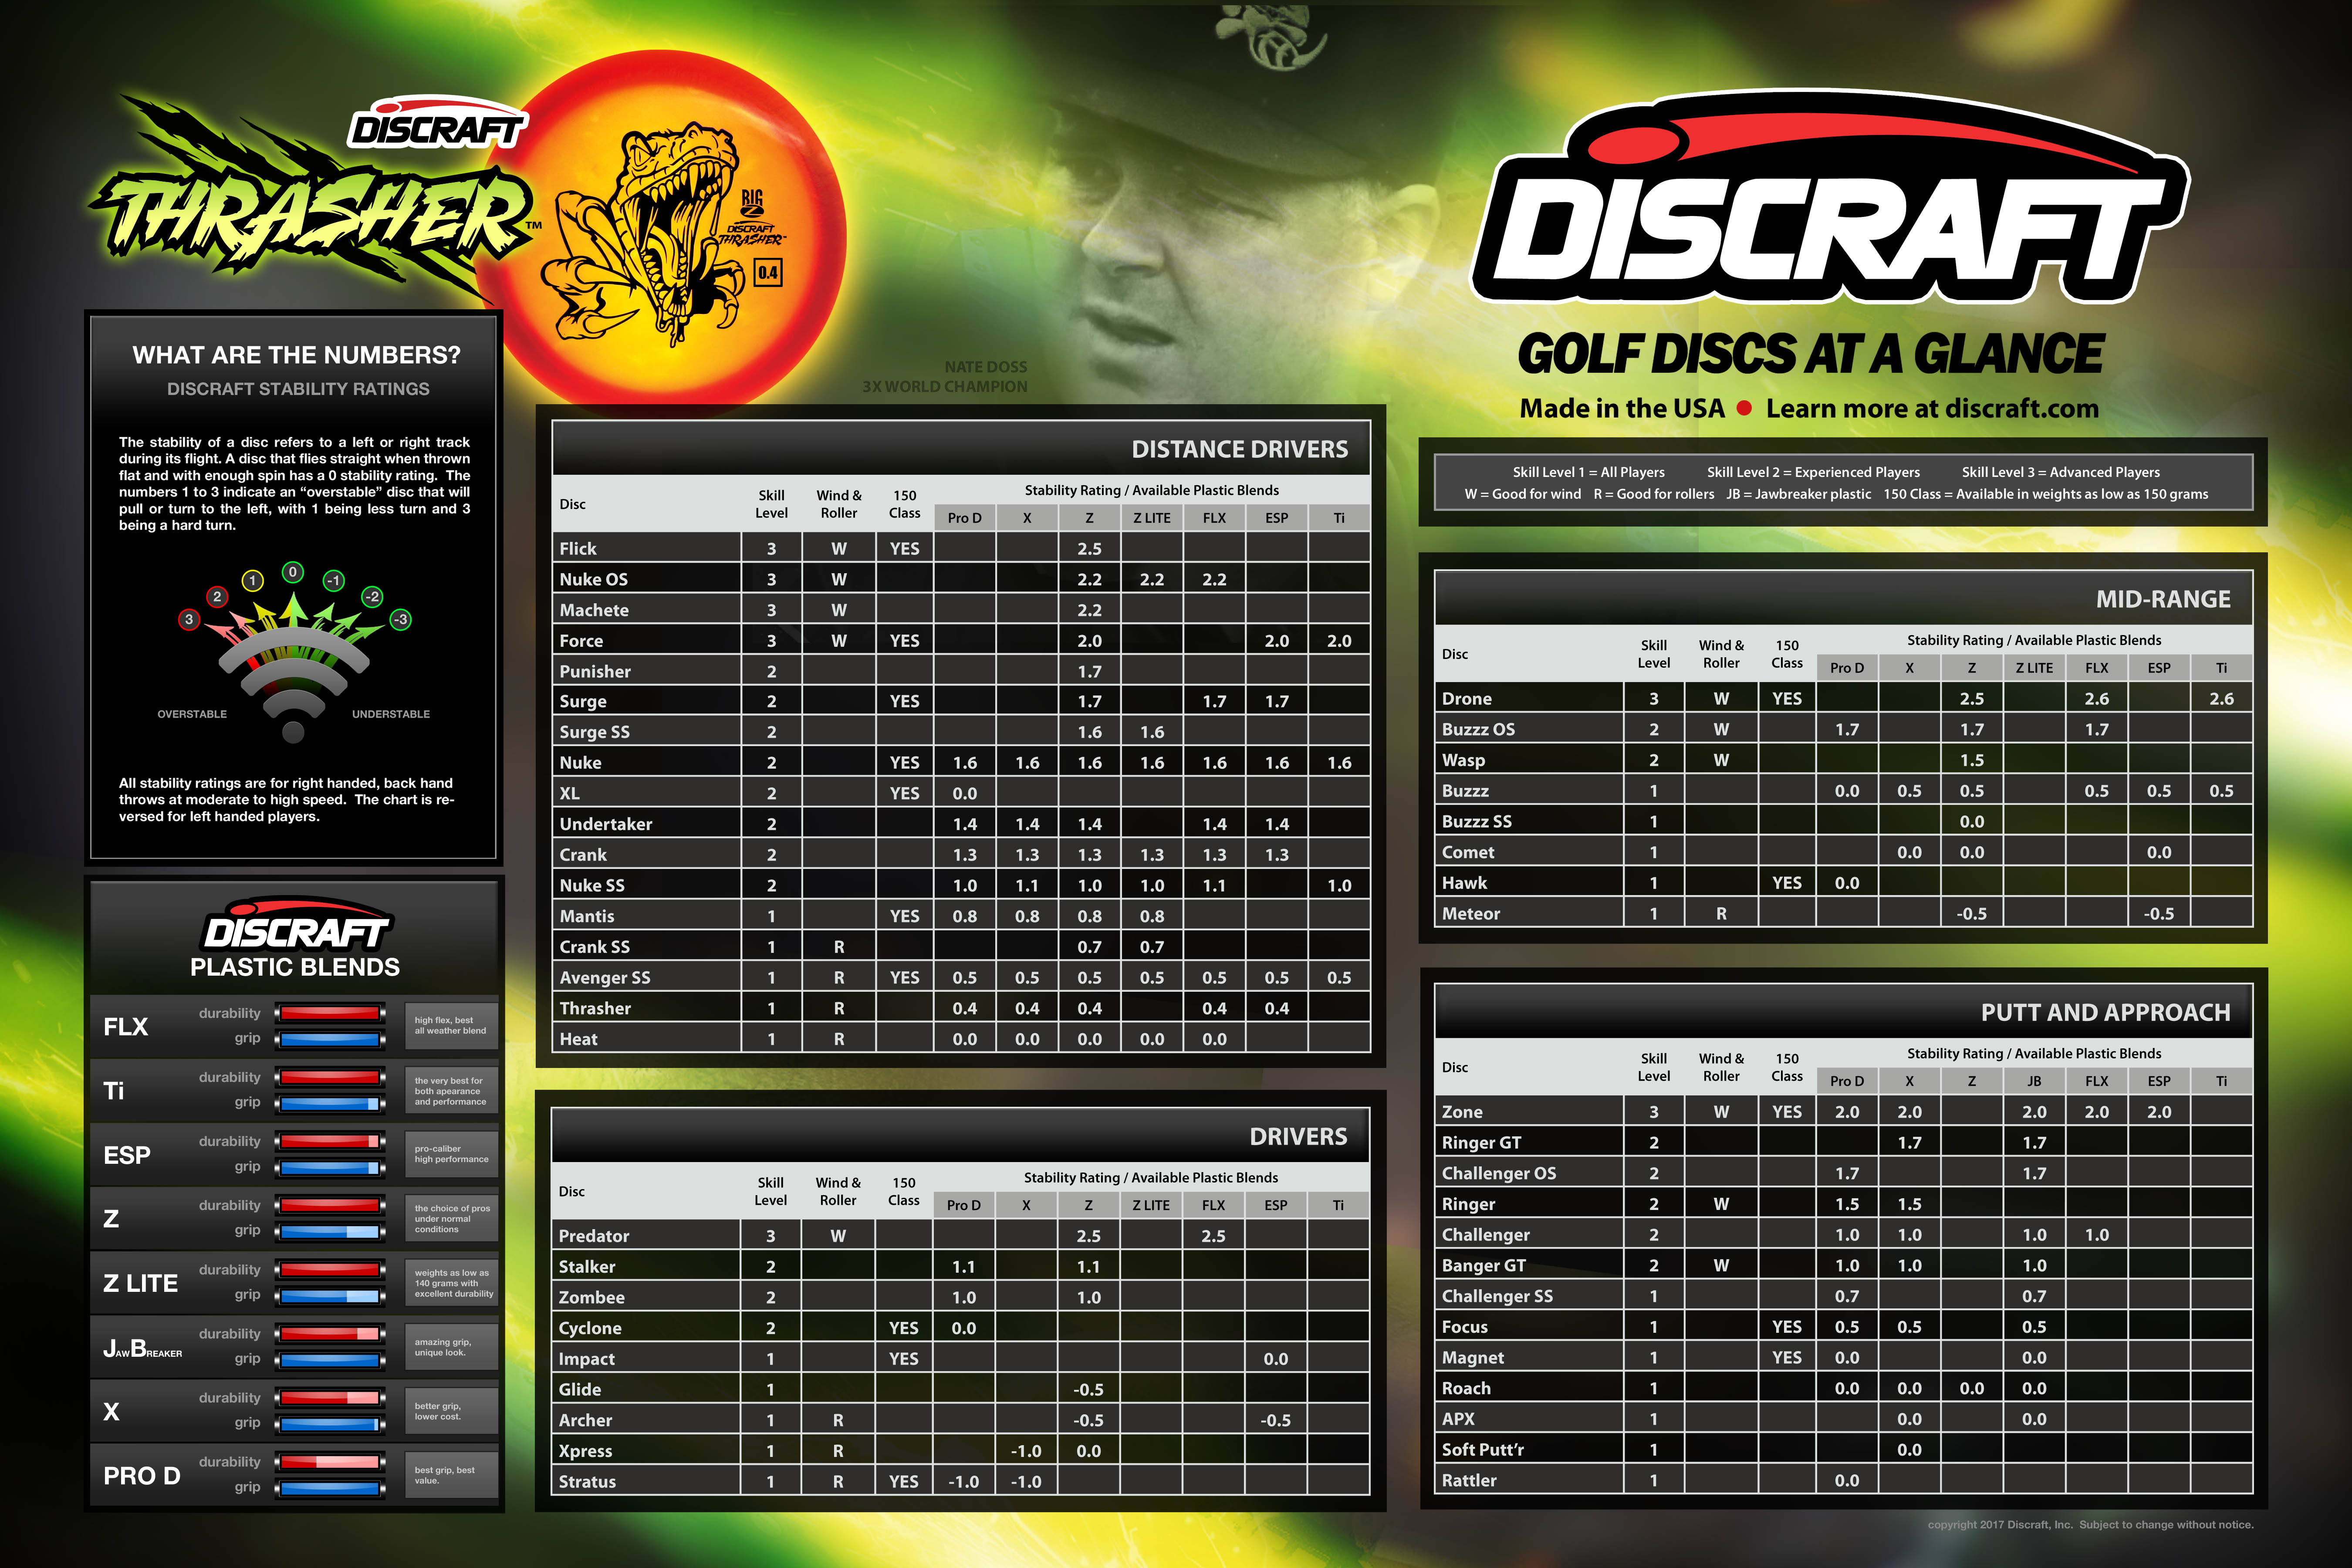 Discraft golf discs chart: every version of every stock disc at a glance